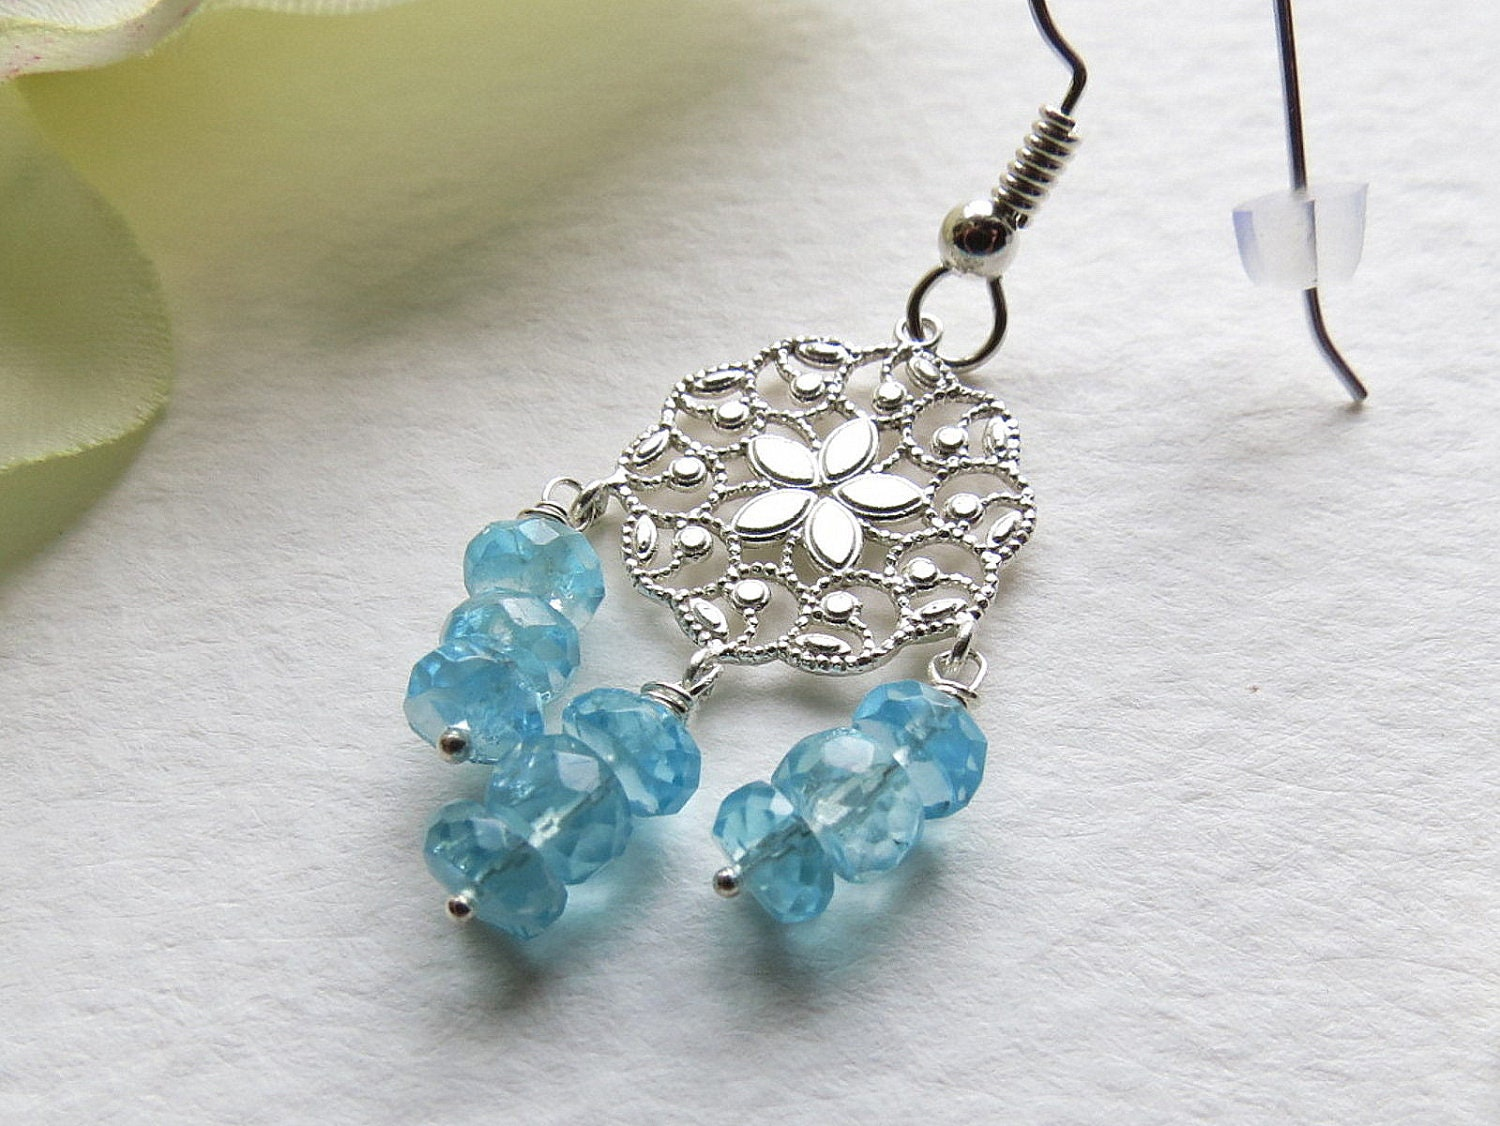 Jewelry, Handmade Earrings Soft Blue Apatite and Sterling Silver. SRAJD - Smokeylady54